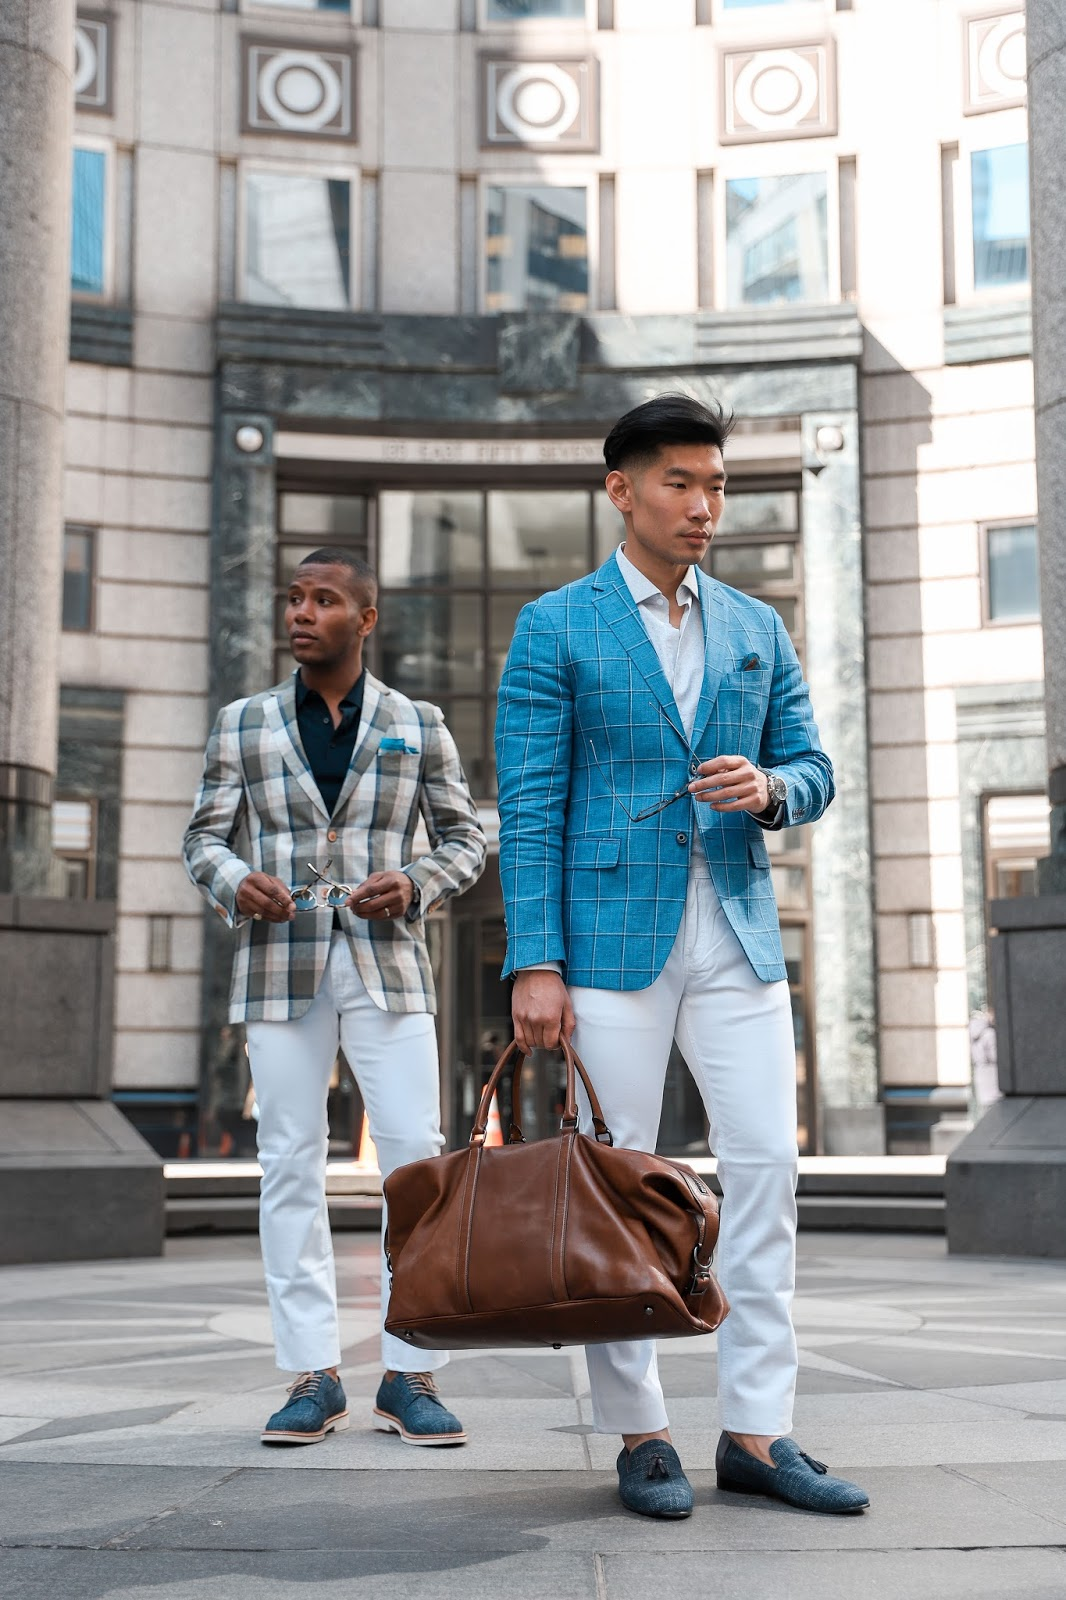 Wearing a Windowpane or Plaid Sport Coat | Levitate Style and Men's Style Pro